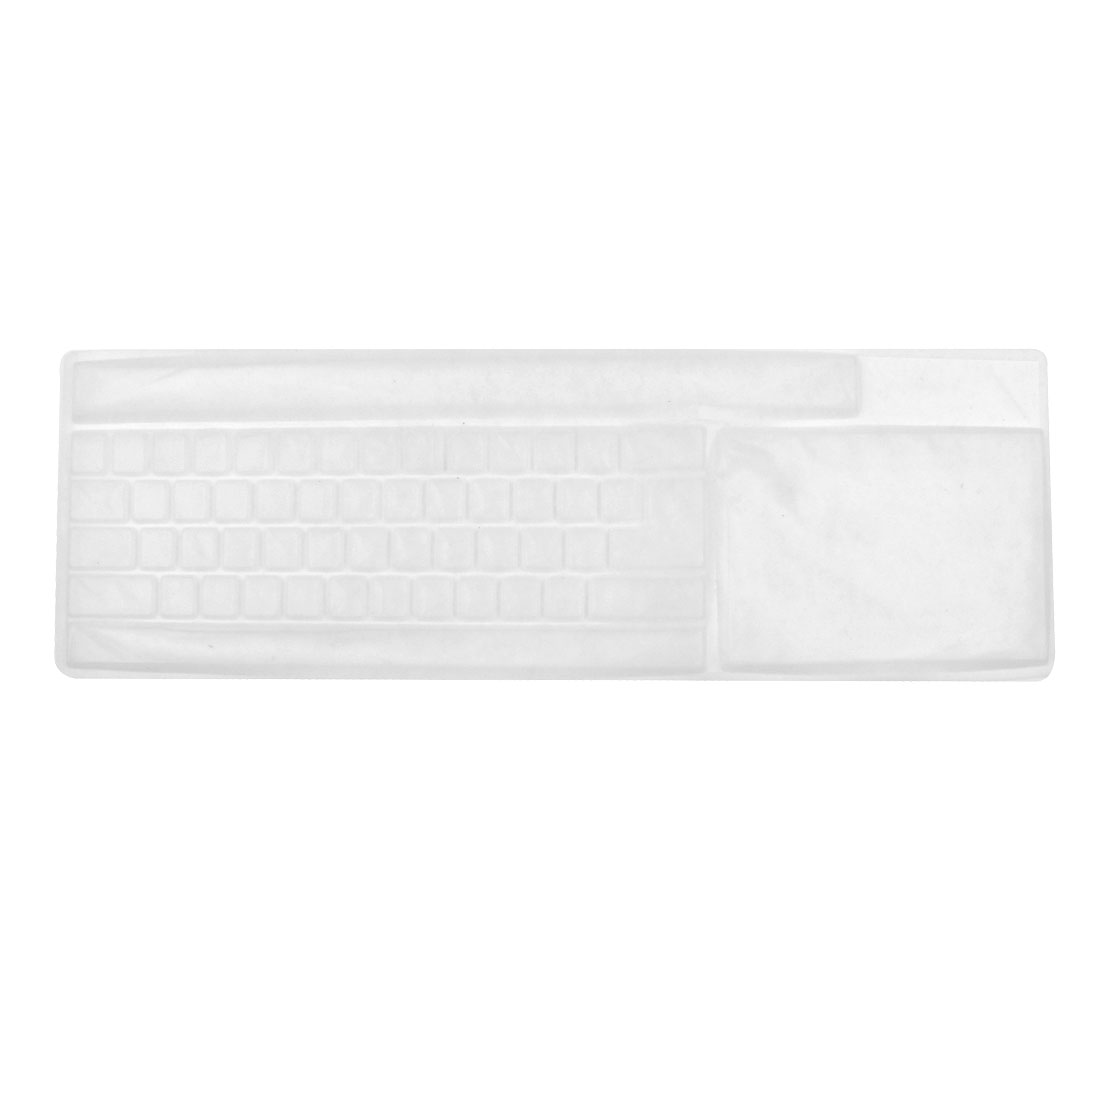 Keyboard Flexible Silicone Shield Film Shell Cover White for Desktop Computer